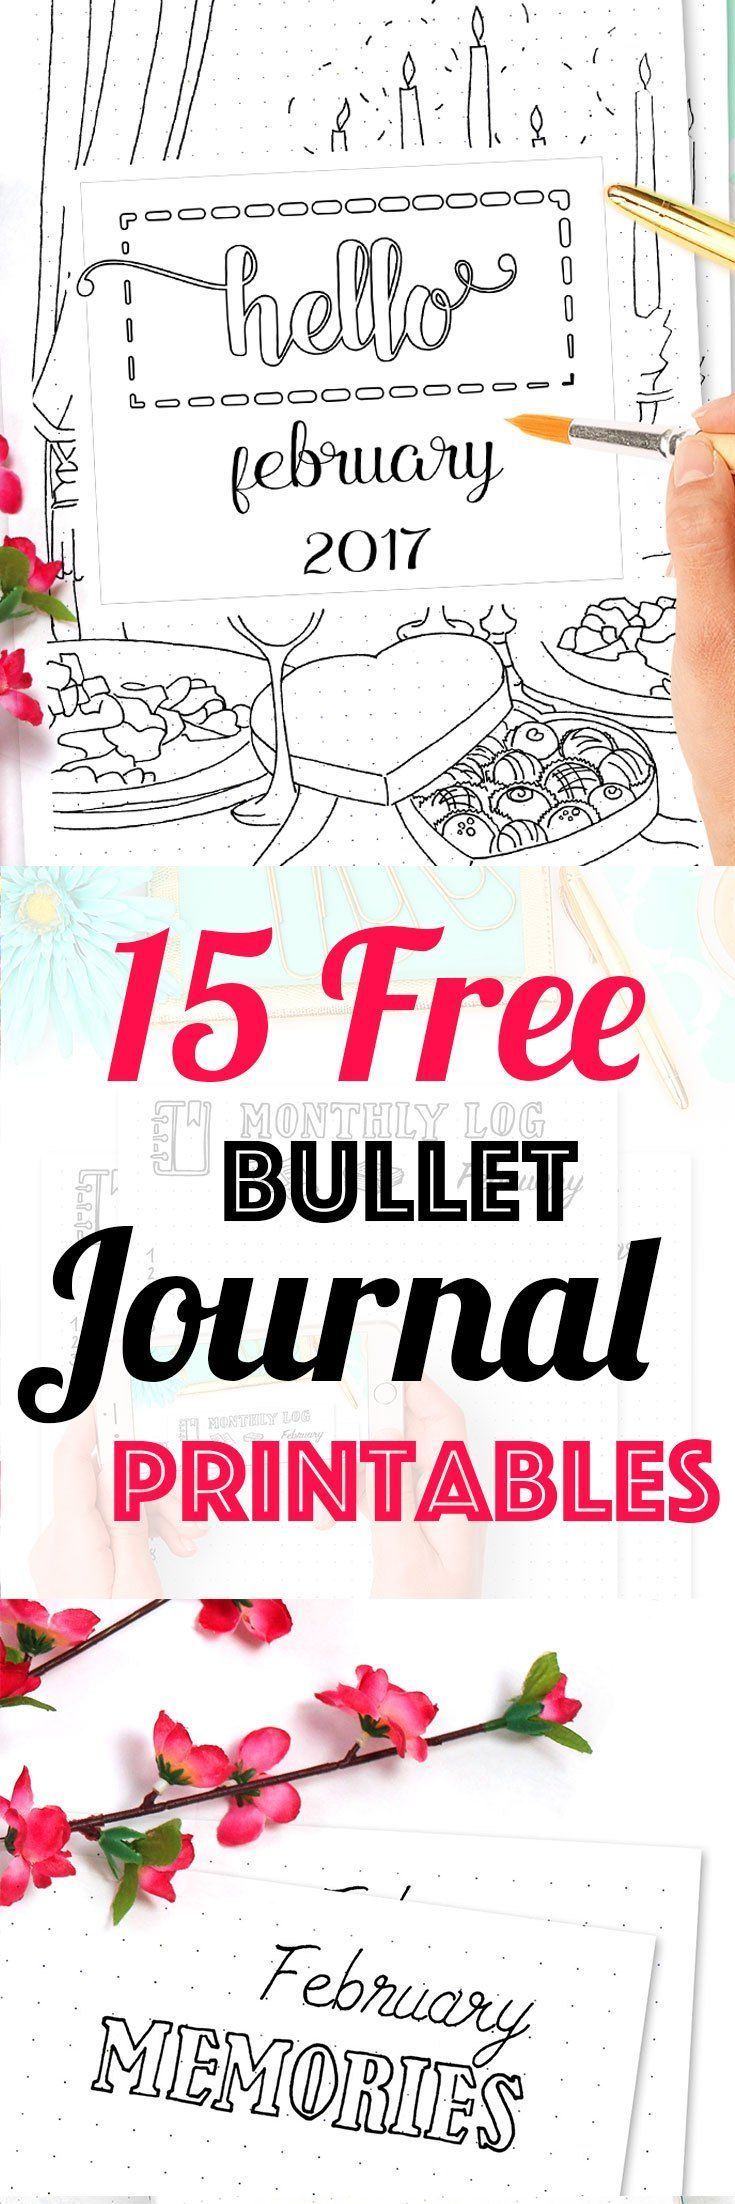 Free Bullet Journal Printables February 2017